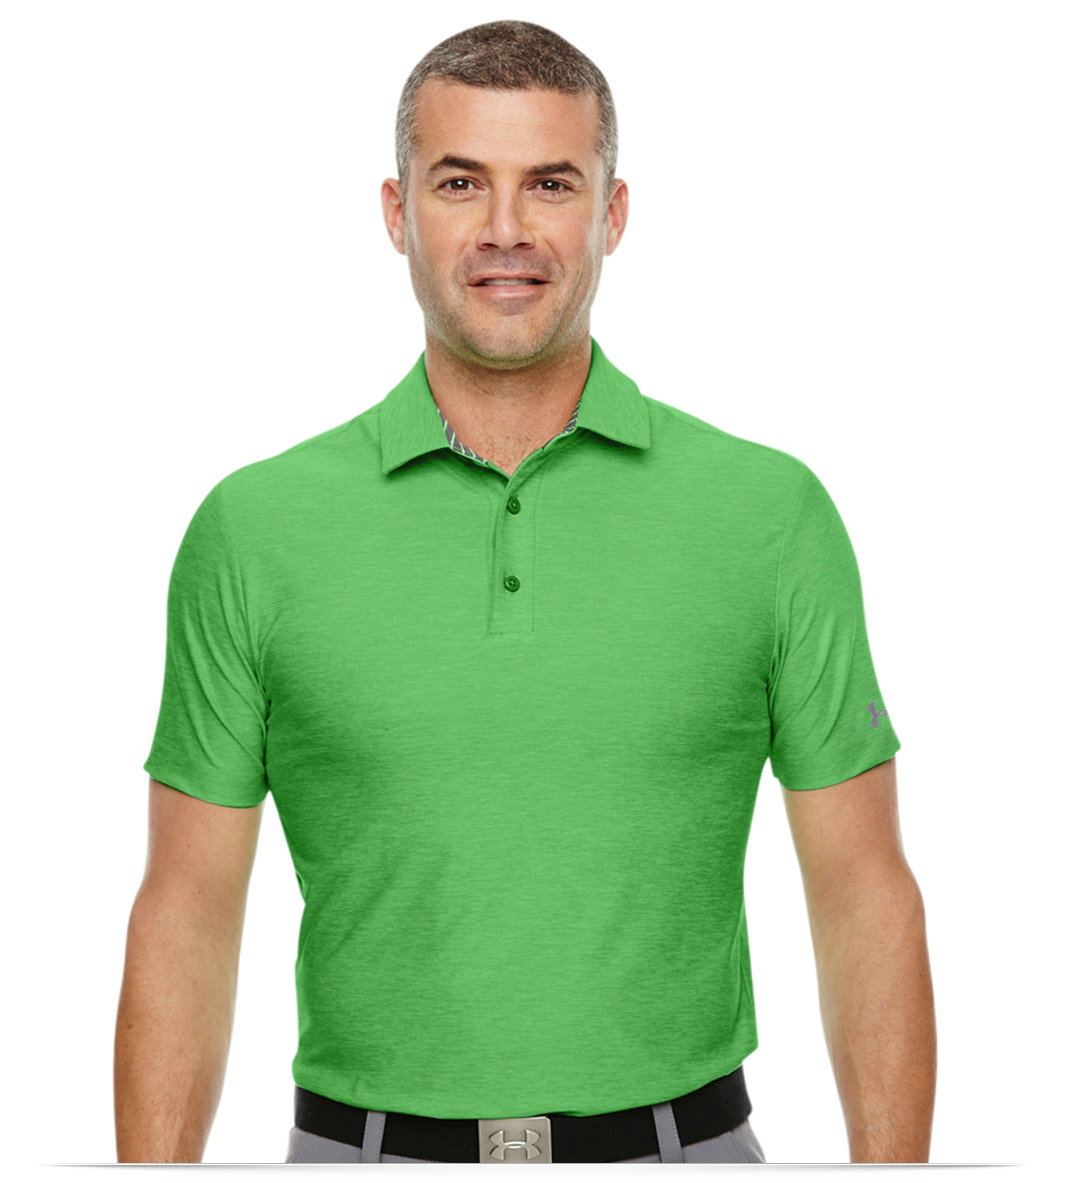 d8694d07 Custom Embroidered Under Armour Men's Playoff Polo at AllStar Logo